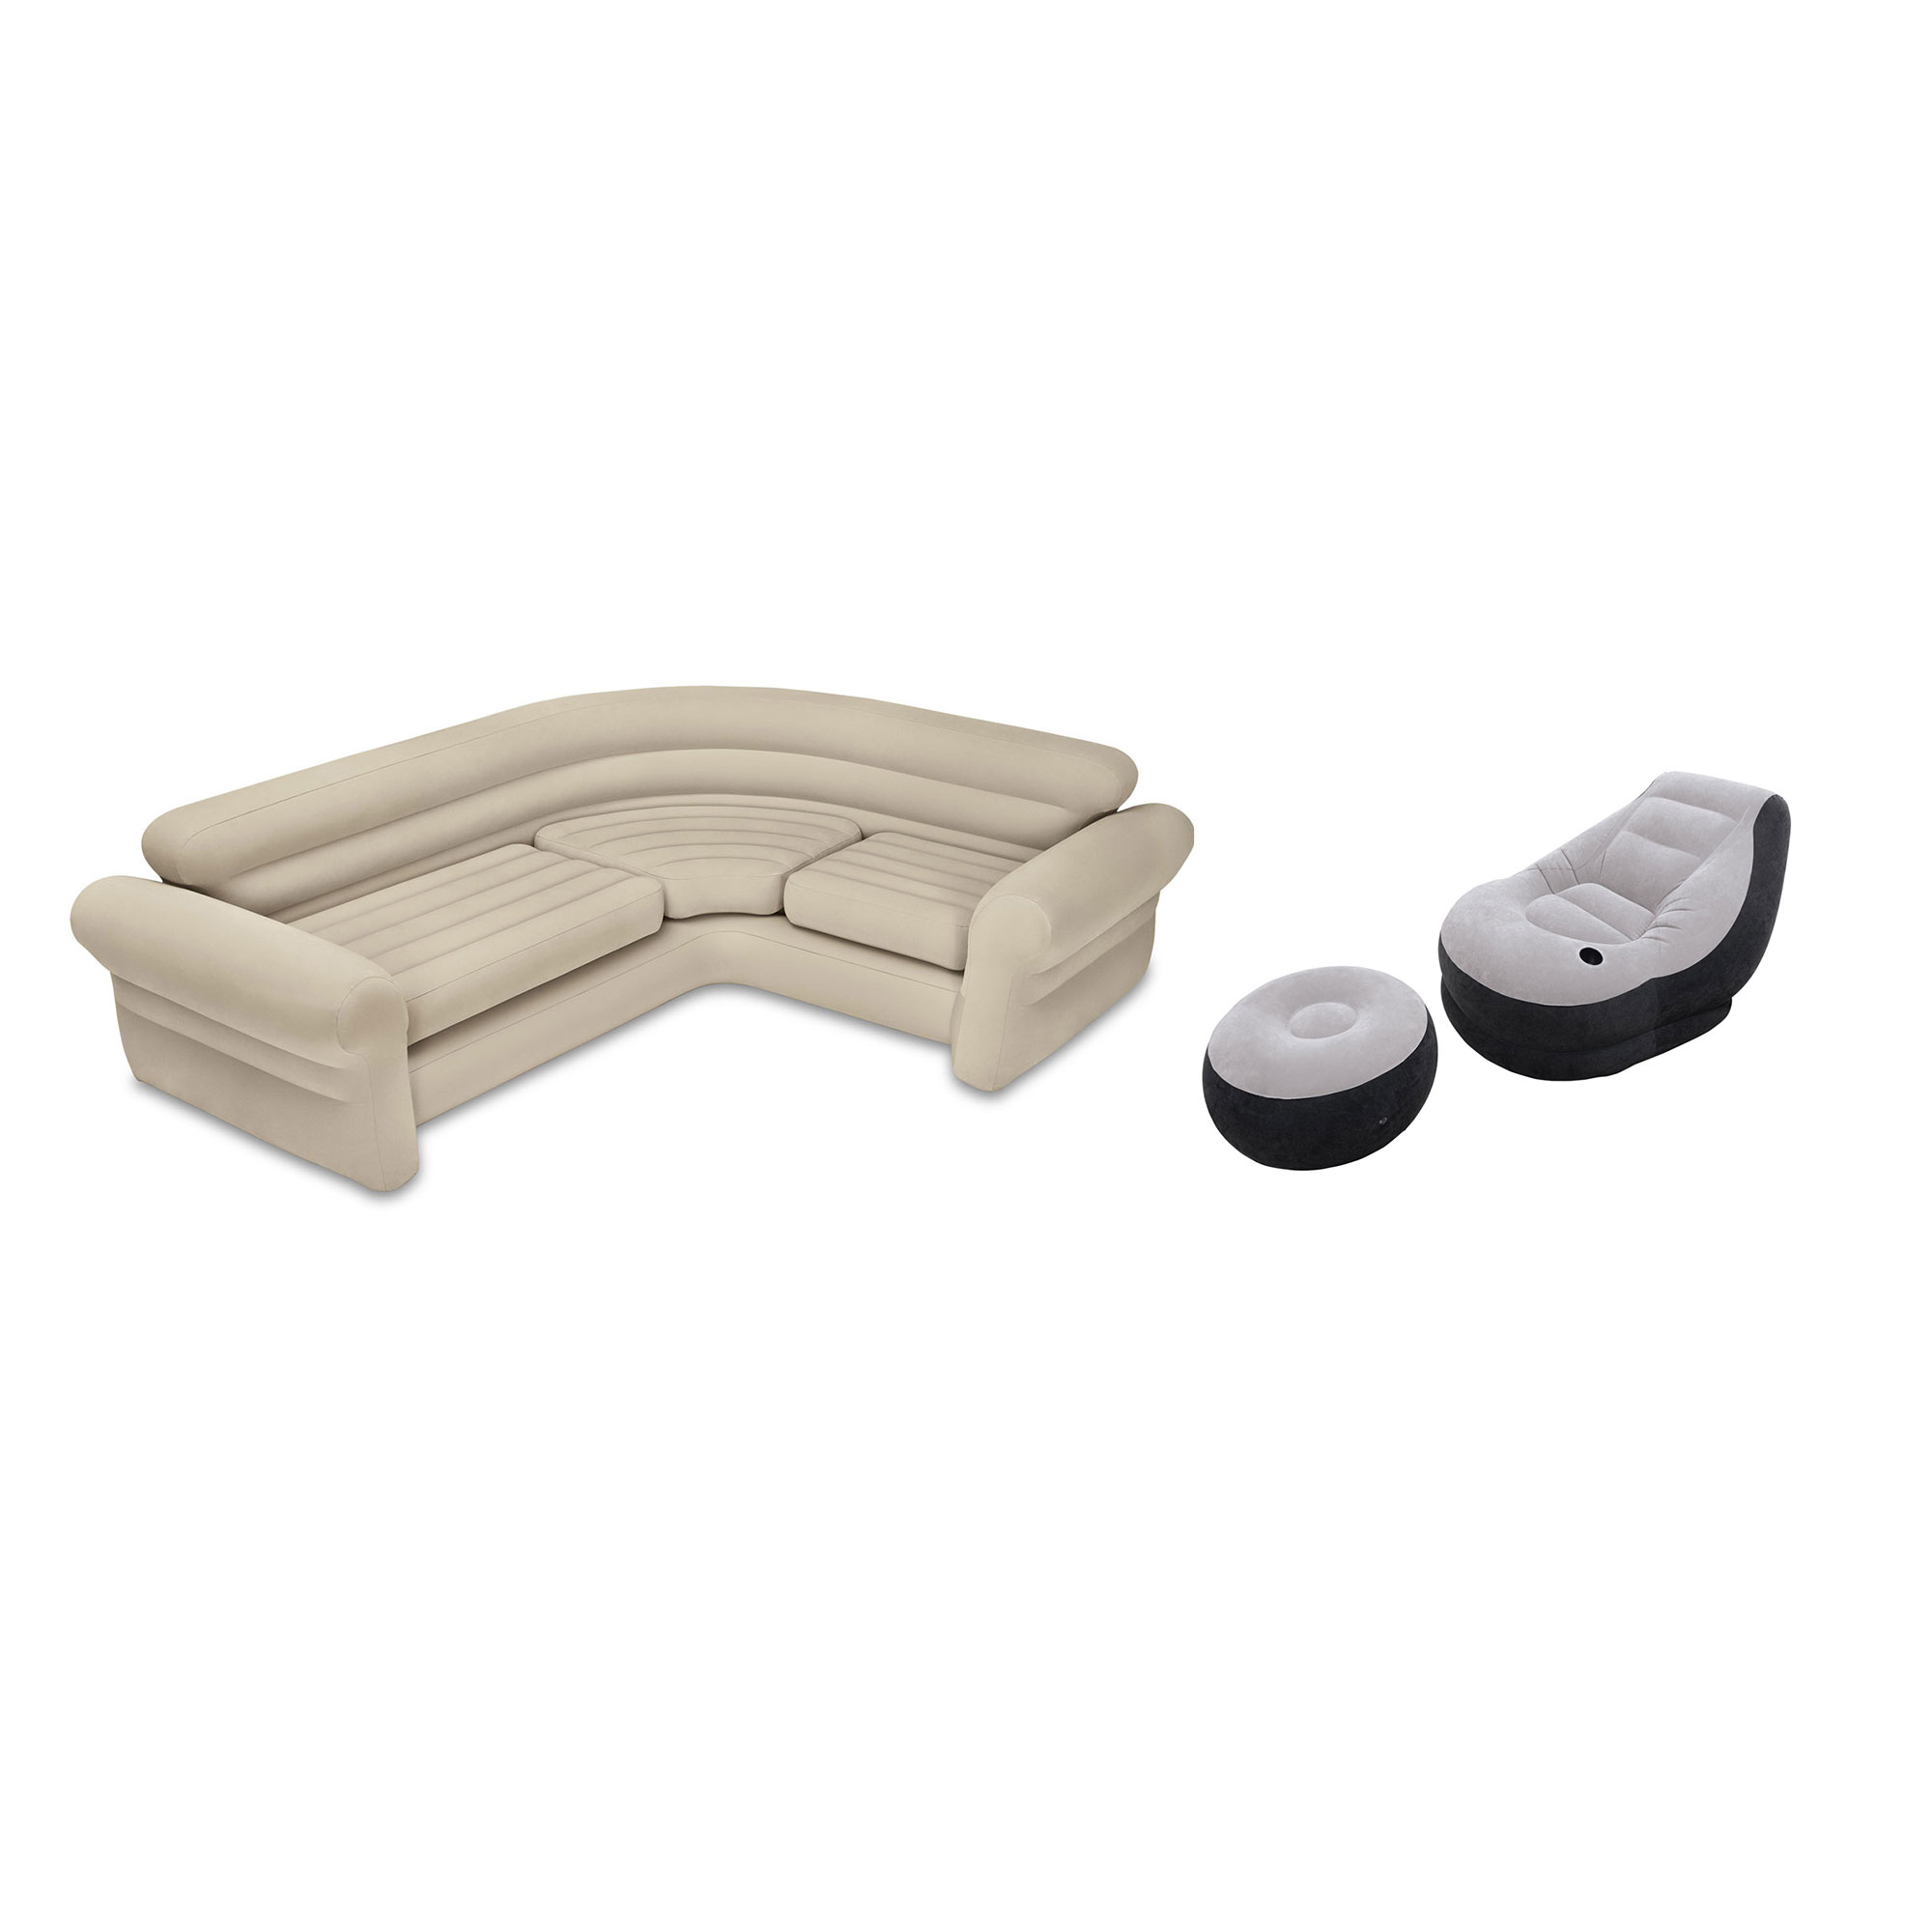 Intex Inflatable Corner Living Room Neutral Sectional Sofa & Lounge Chair Set by Intex